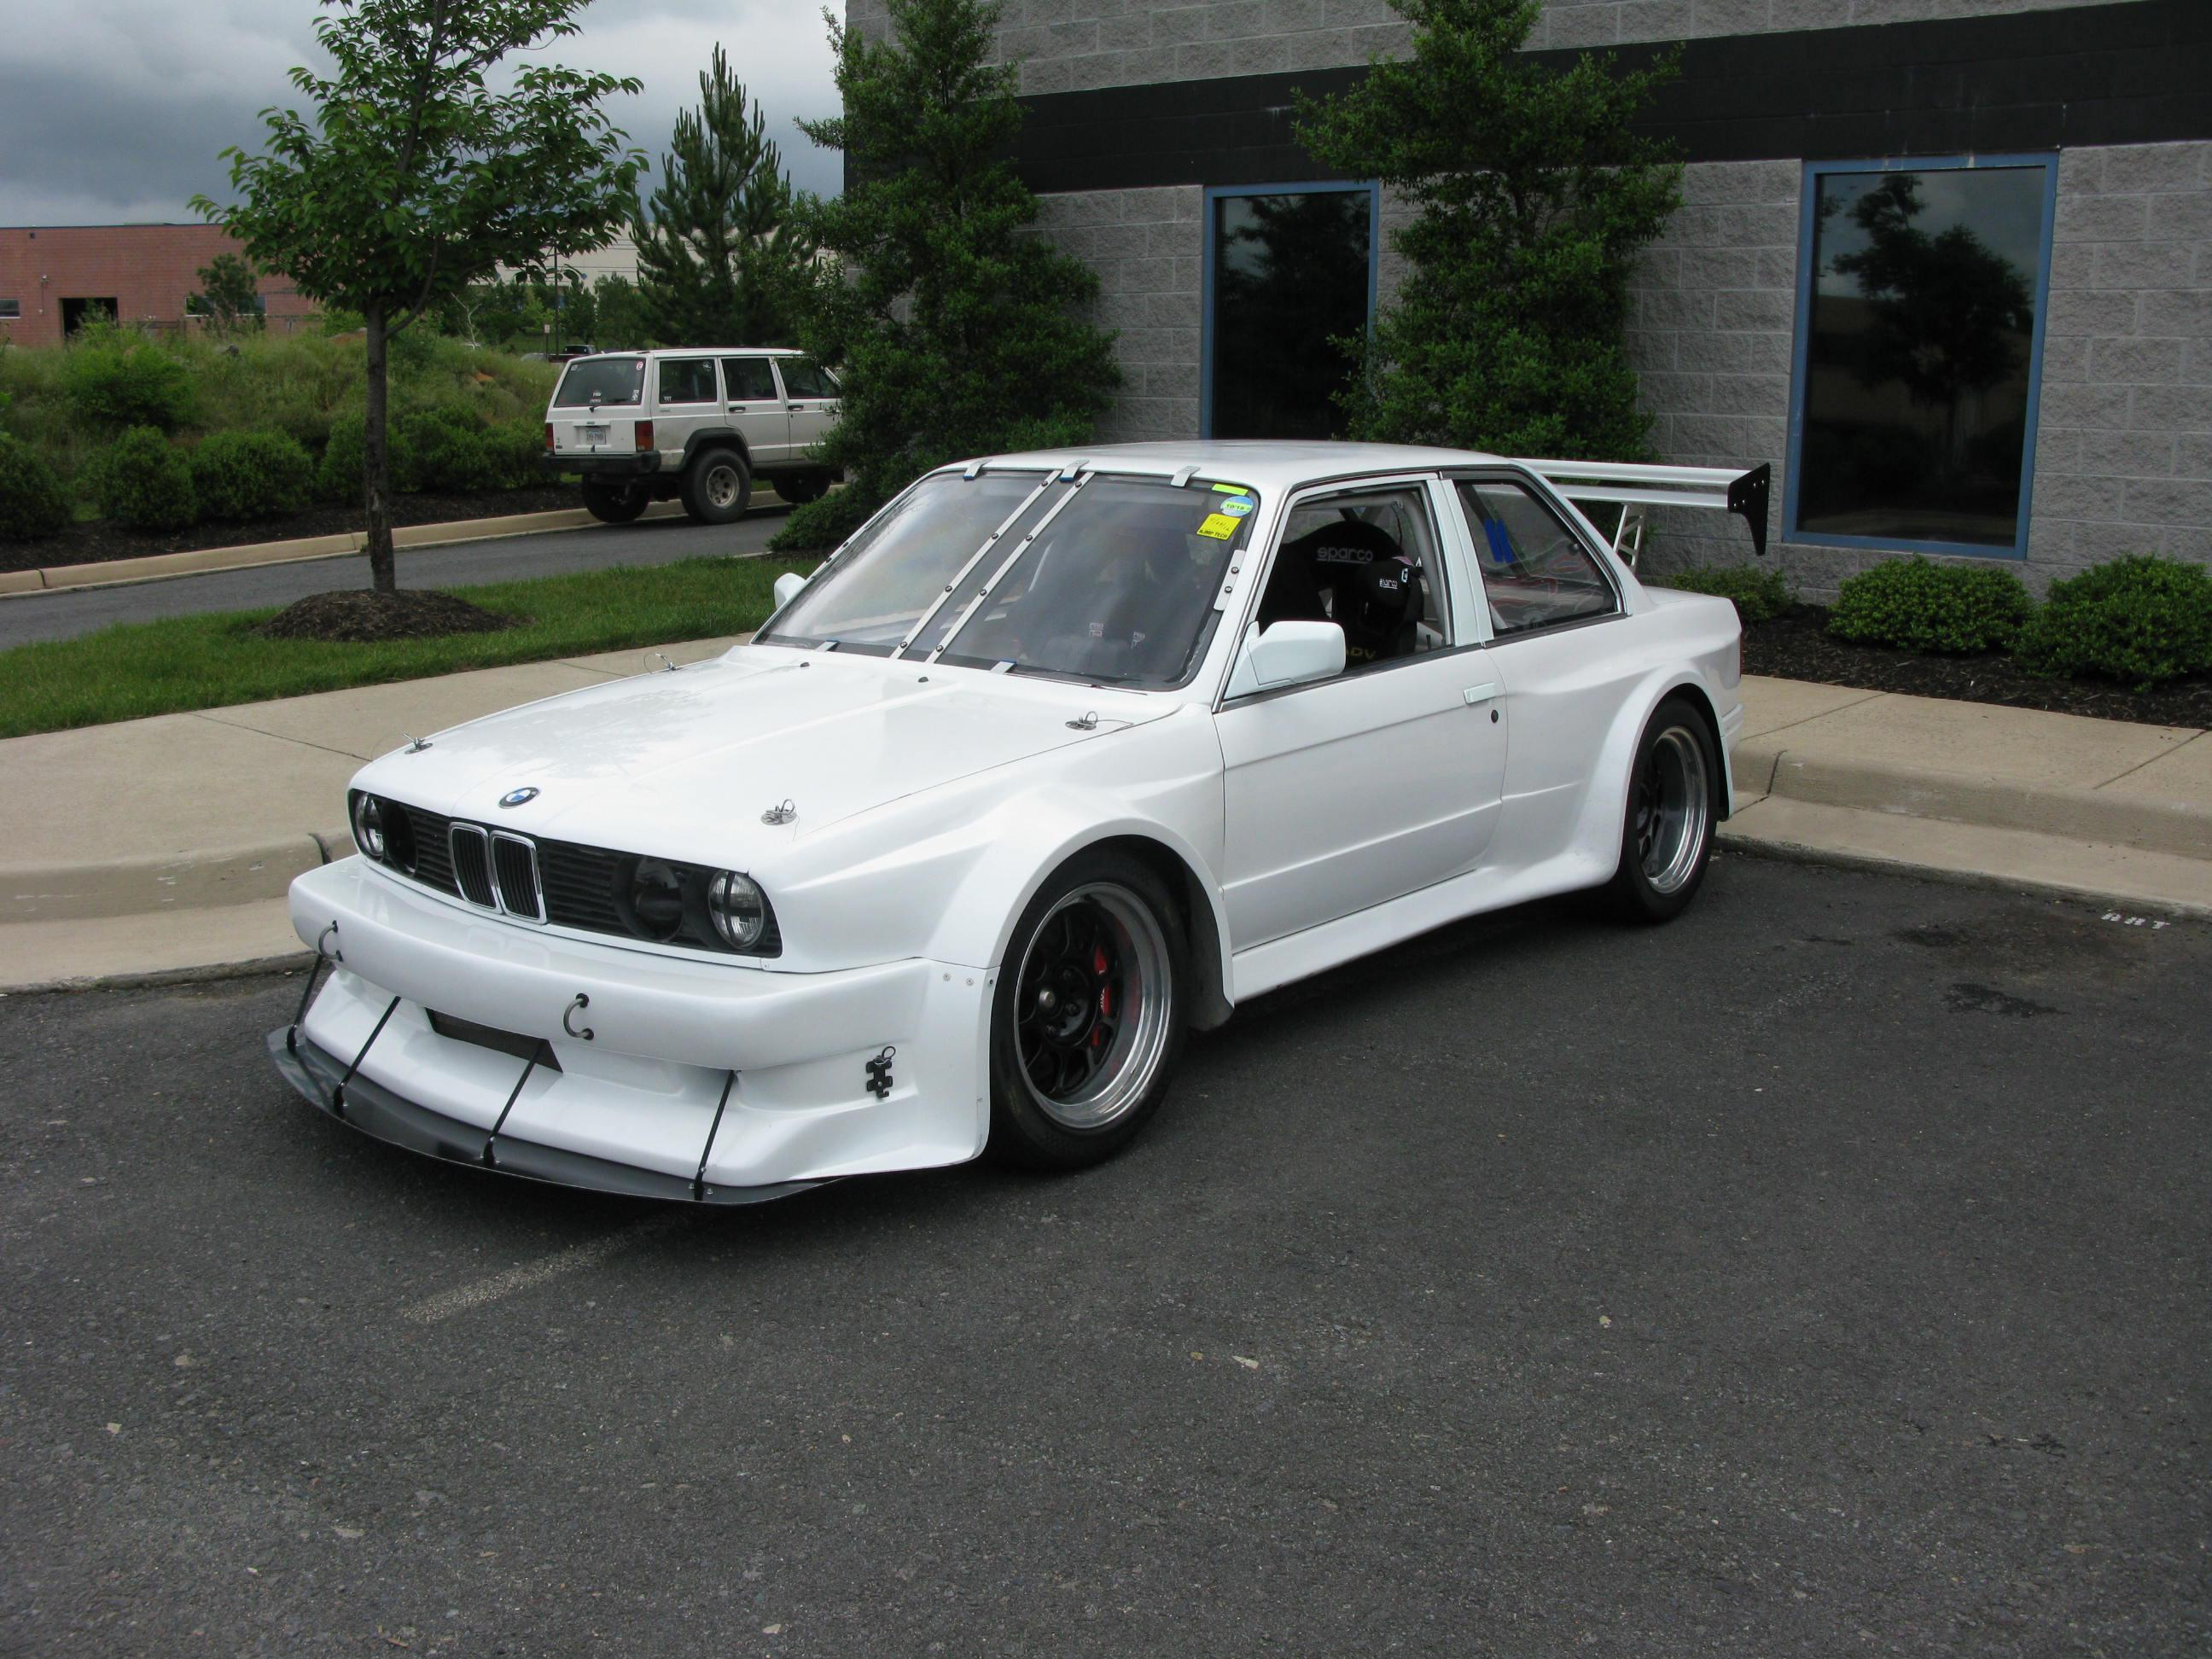 For Sale Widebody Turbo M52 E30 Build Race Party